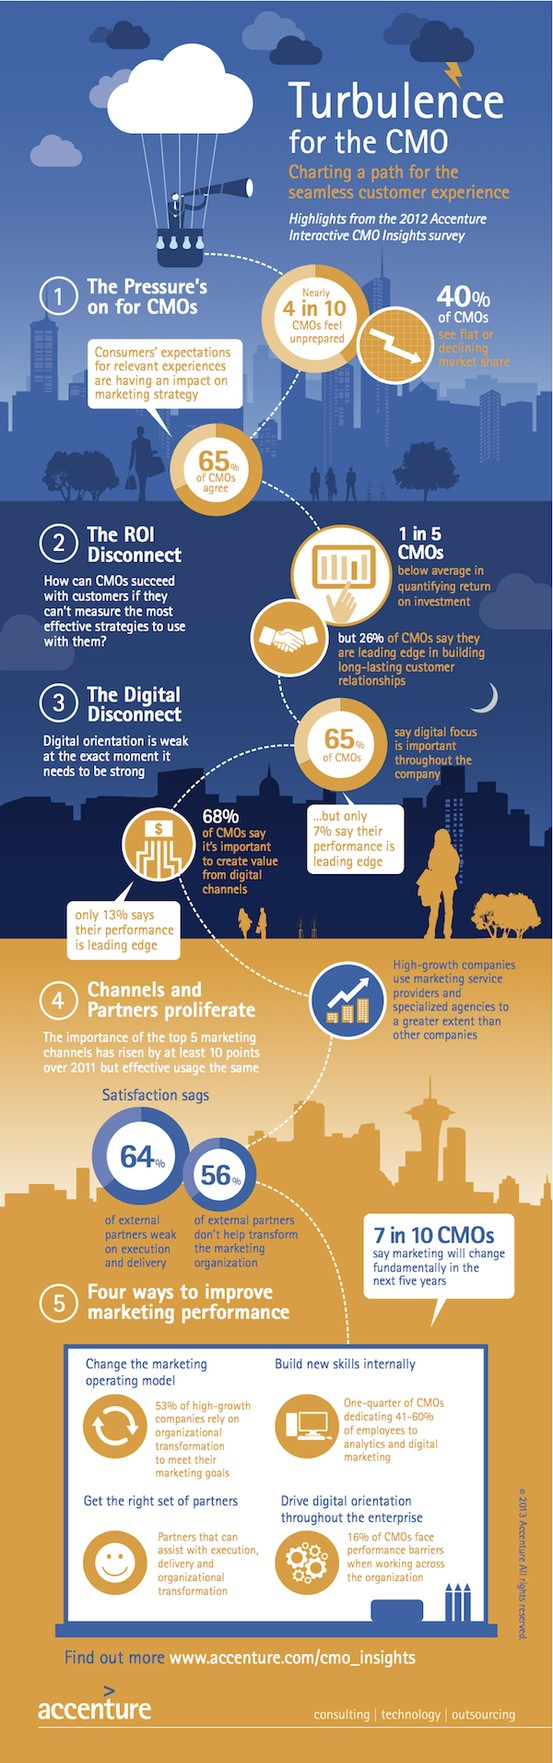 CMO-Trends-and-Statistics